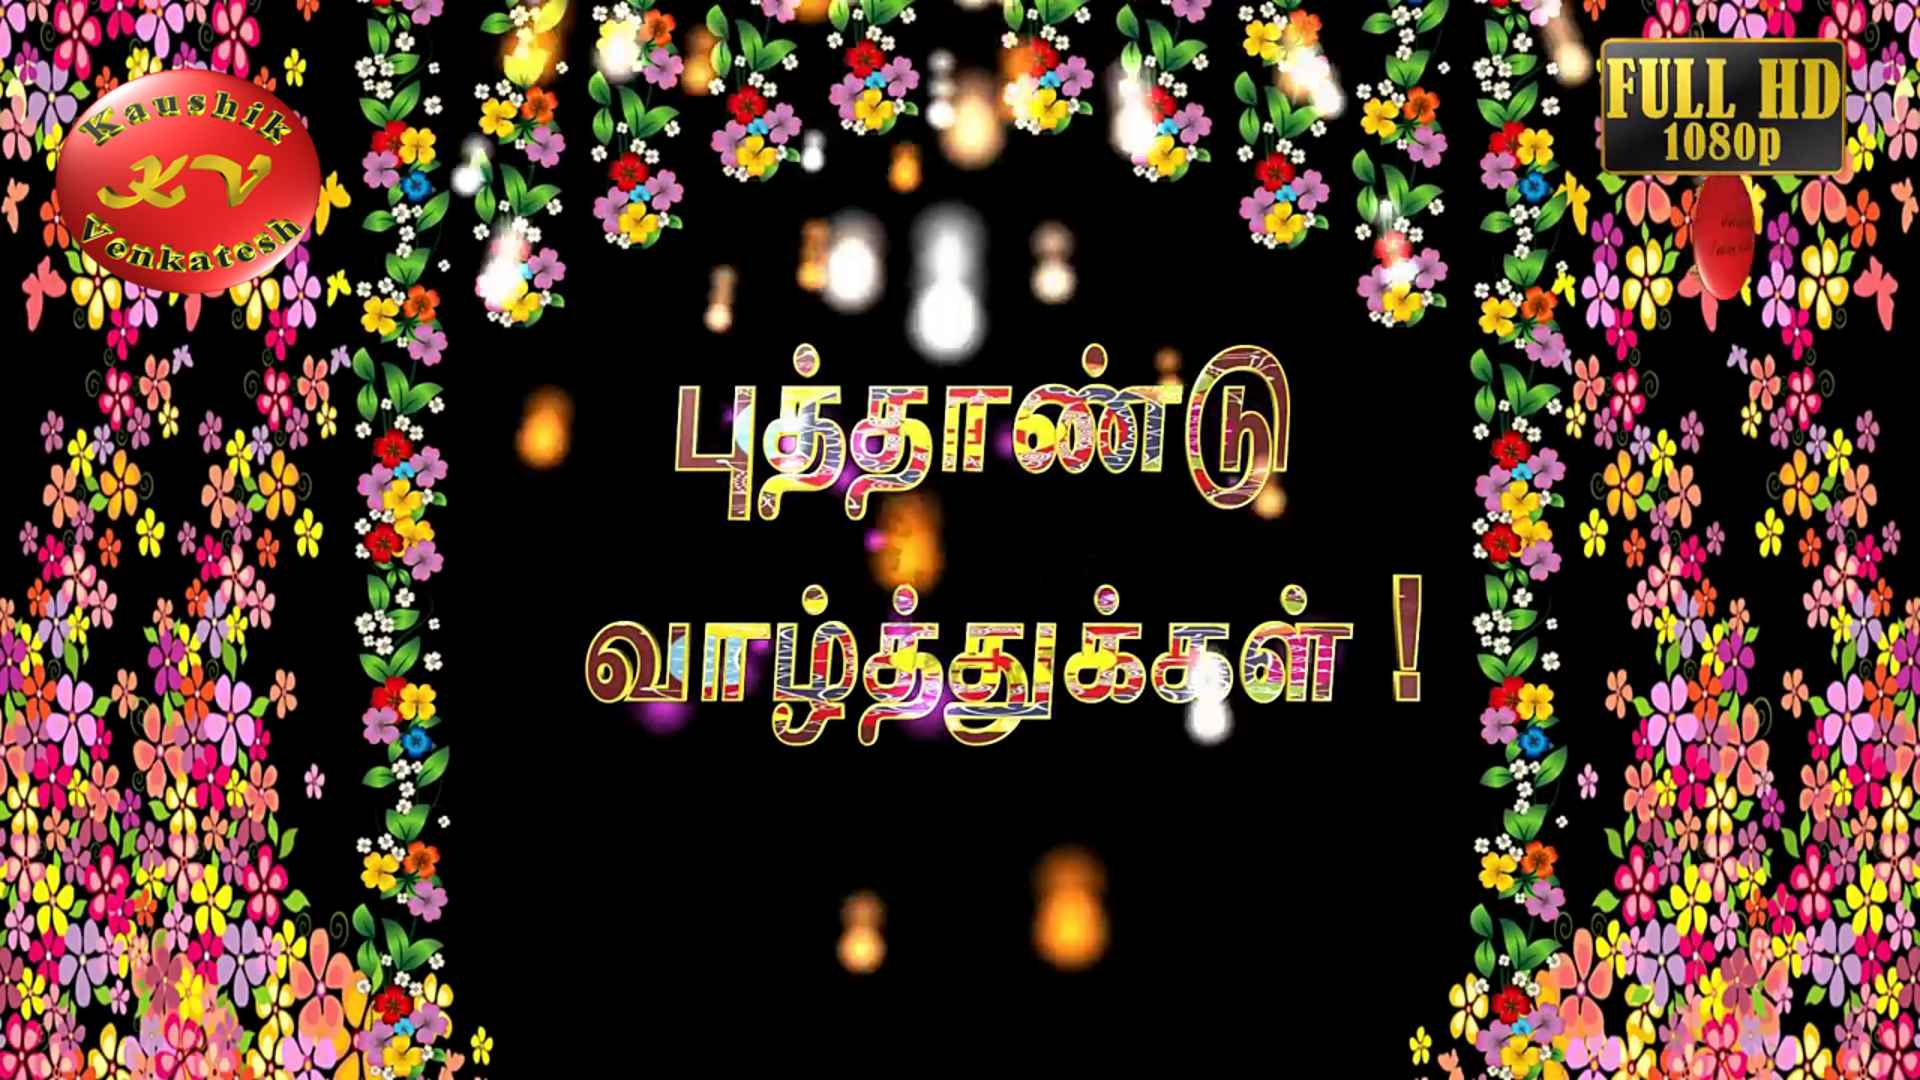 Tamil New Year Greetings Images